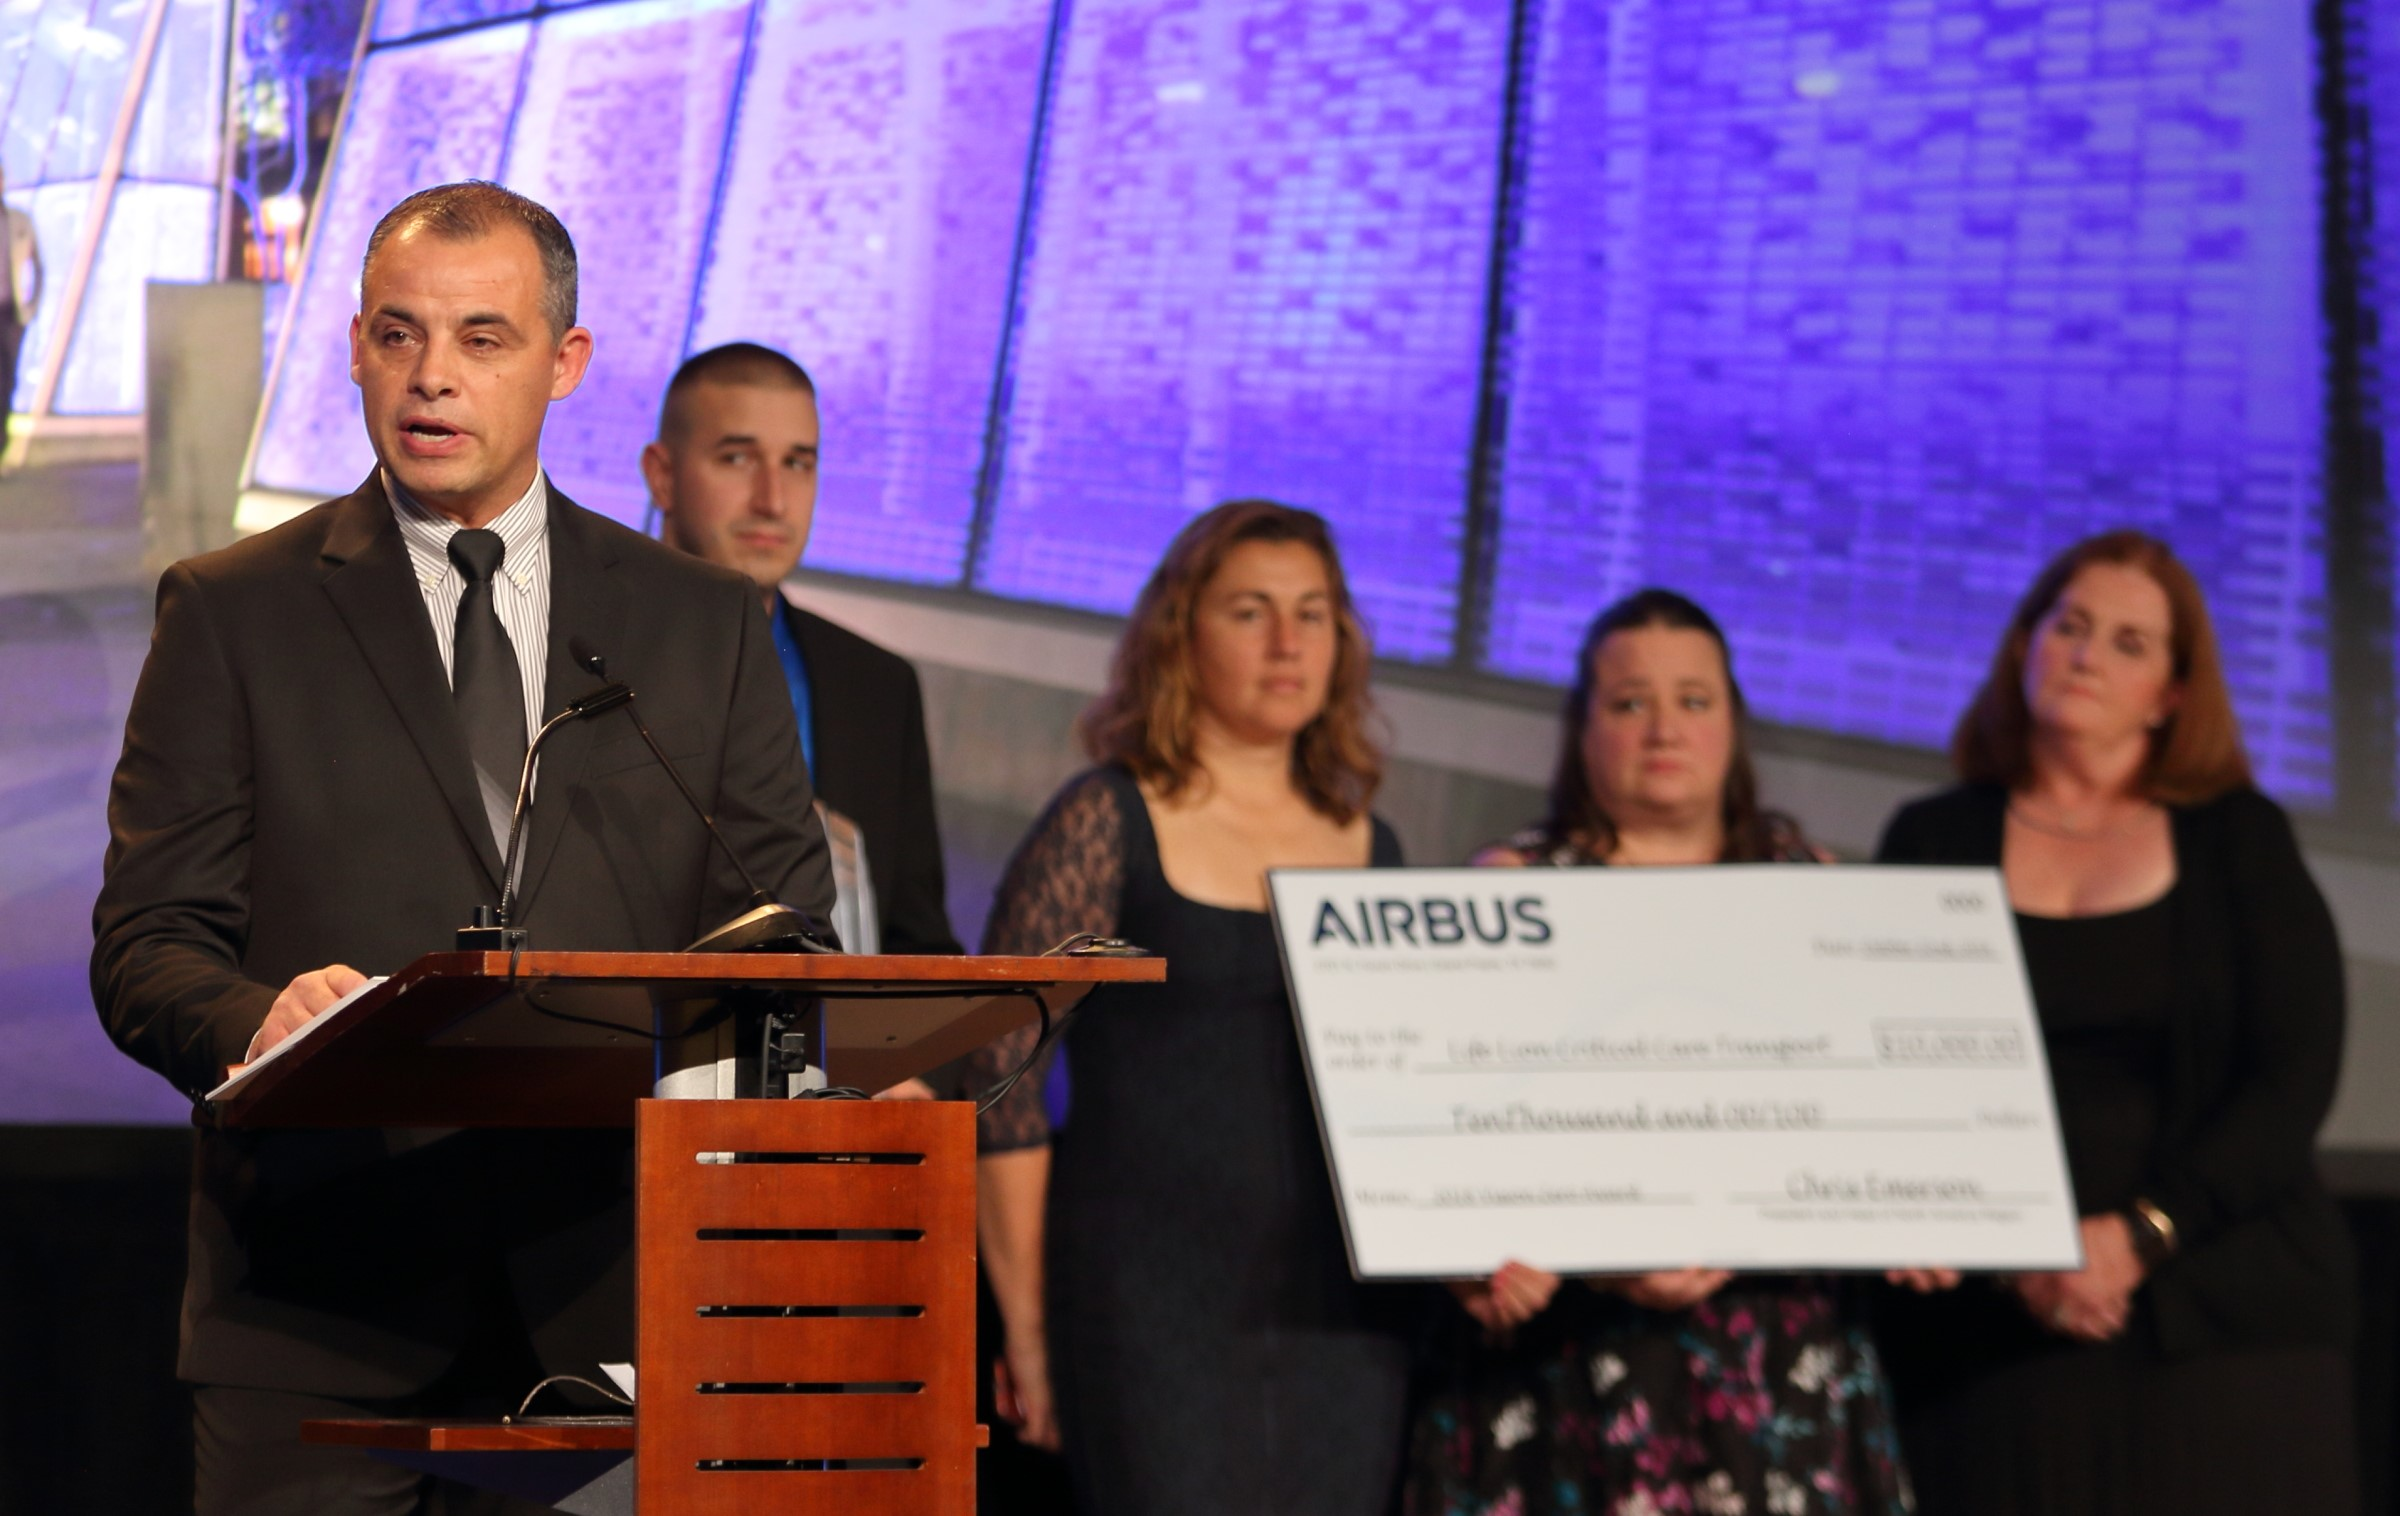 A man in a suit stands at a lectern speaking. Four people stand behind him holding an oversized cardboard check.